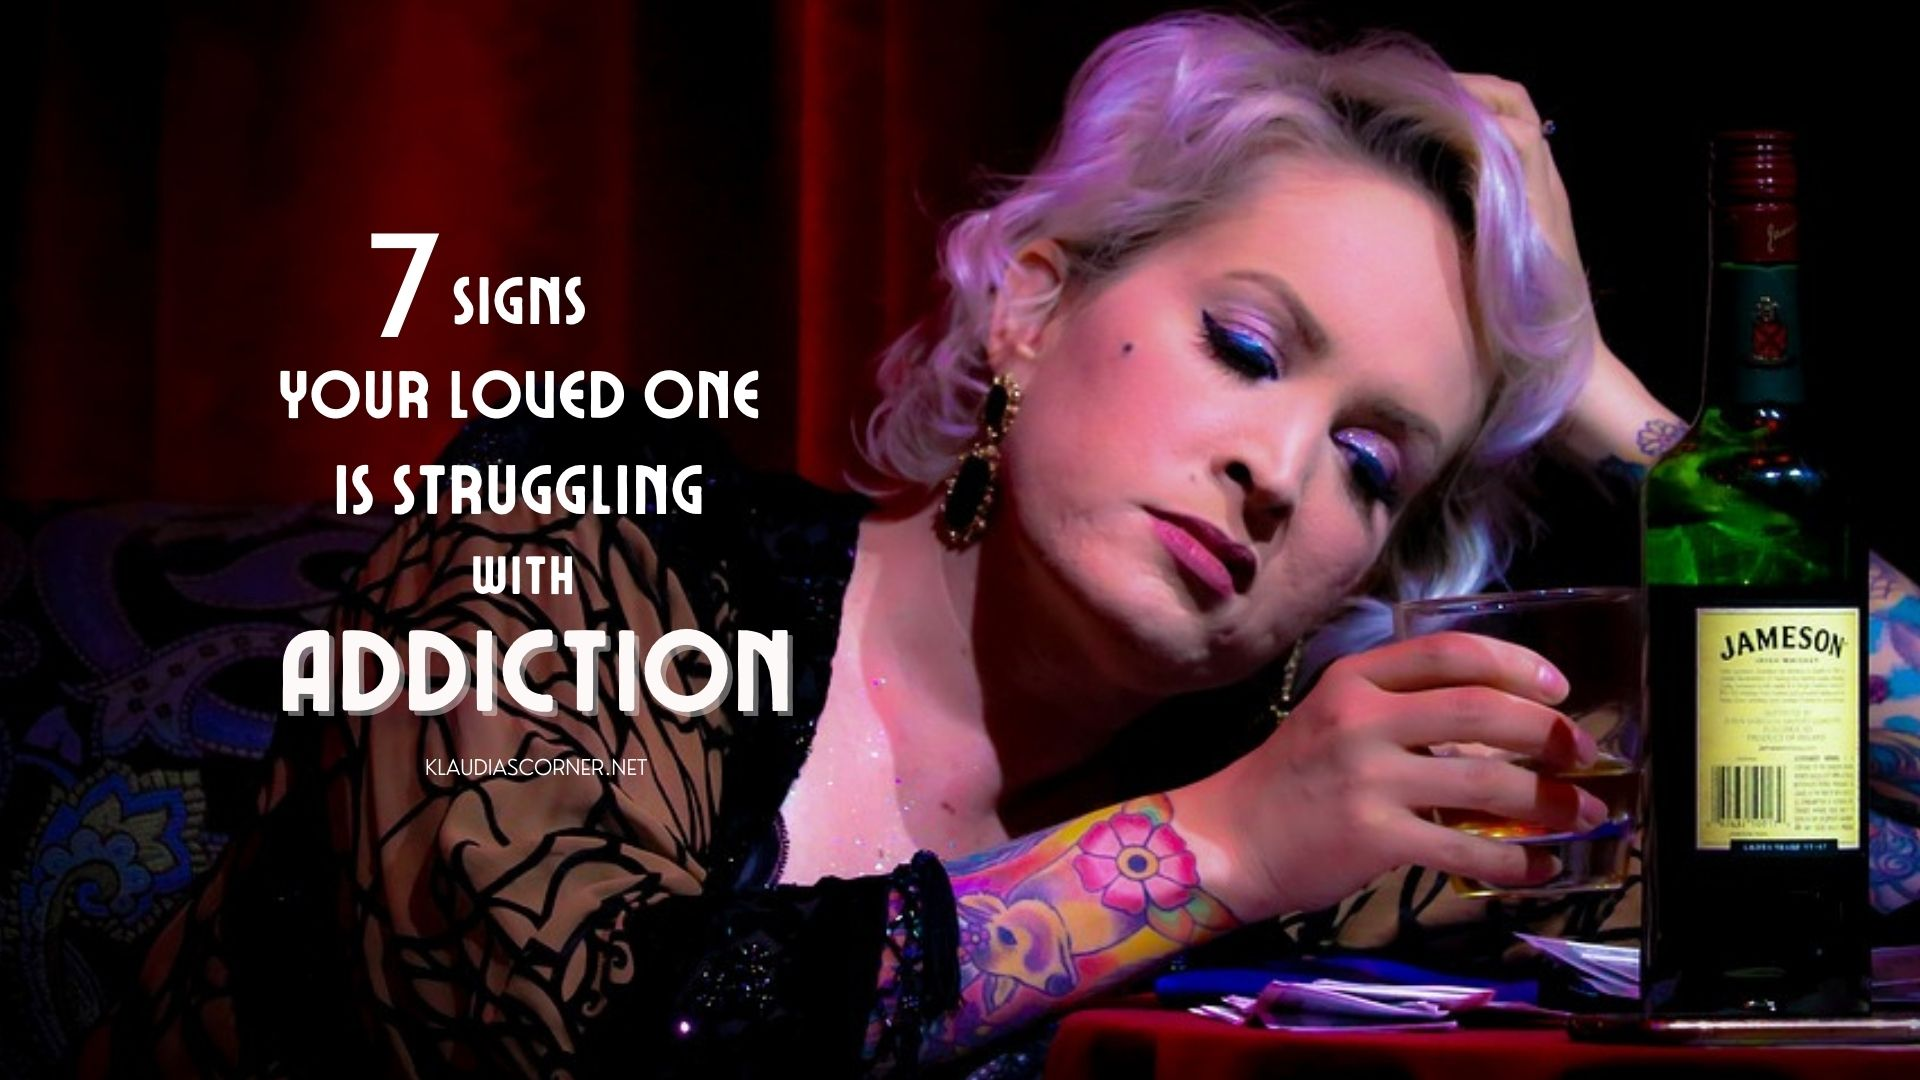 The Signs Of Addiction - 7 Signs Your Loved One is Struggling with Addiction